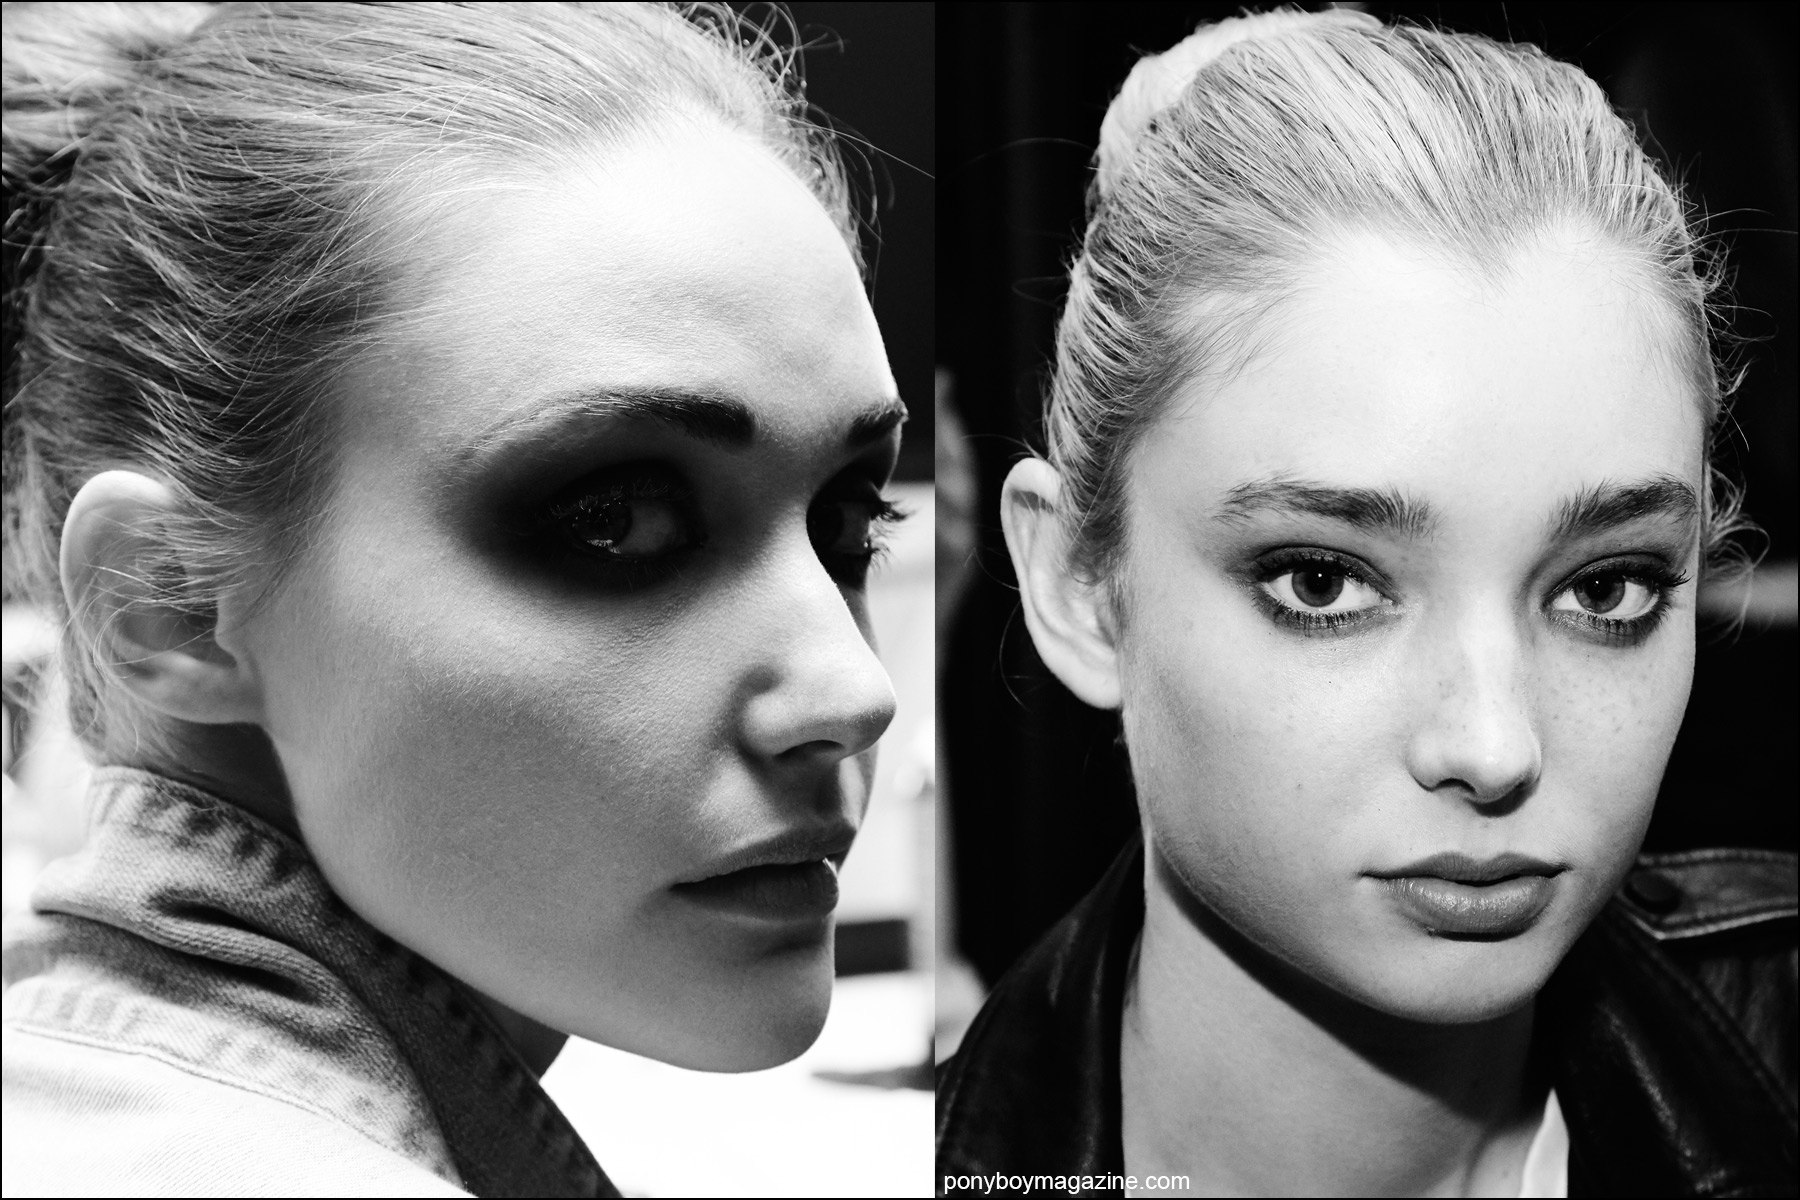 Black and white photographs of models backstage in hair and makeup. Photographed at the Georgine Spring/Summer 2106 collection by Alexander Thompson for Ponyboy magazine NY.